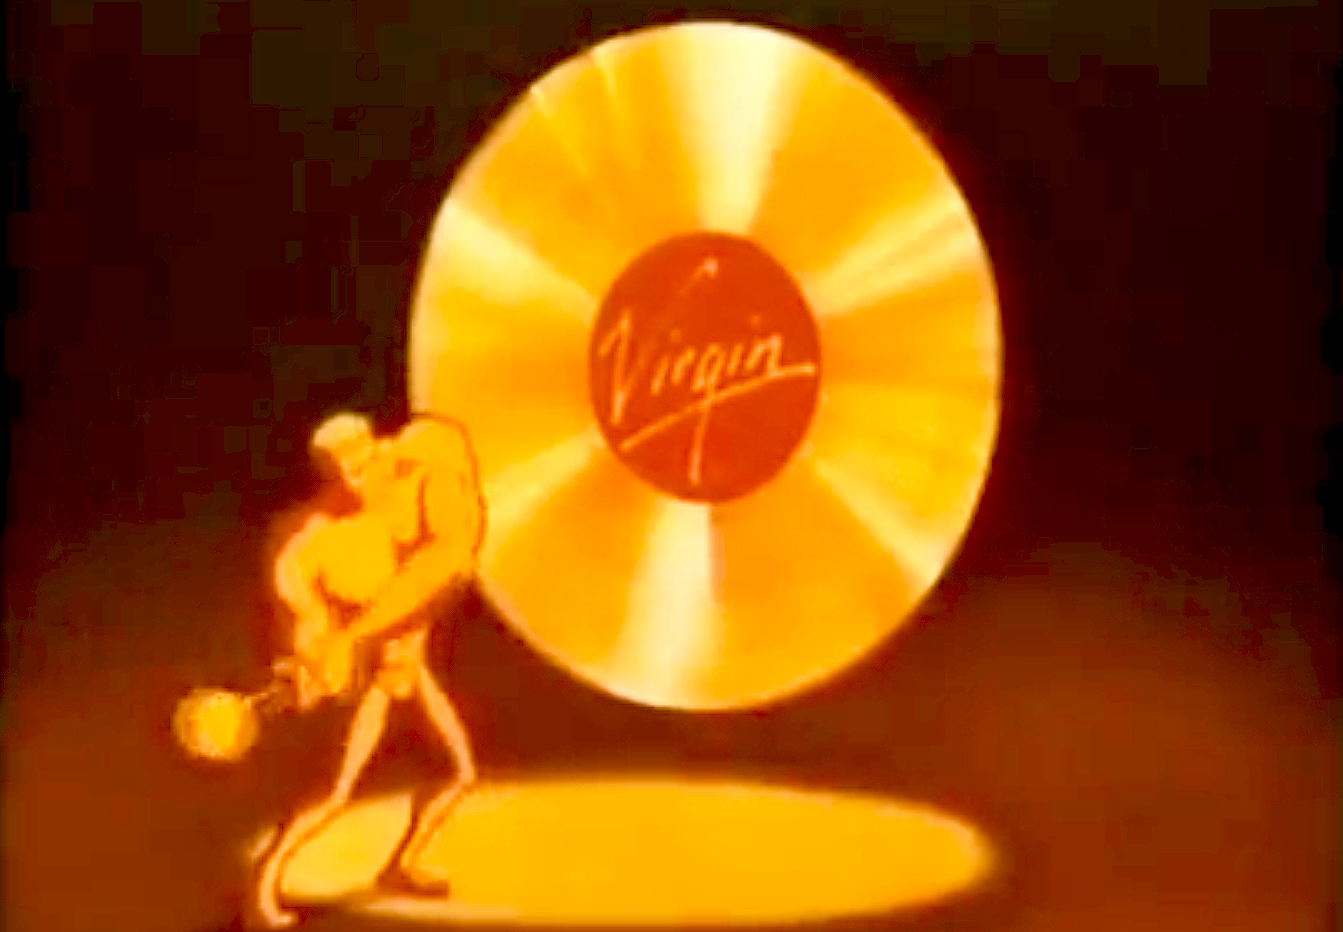 Virgin Films ident